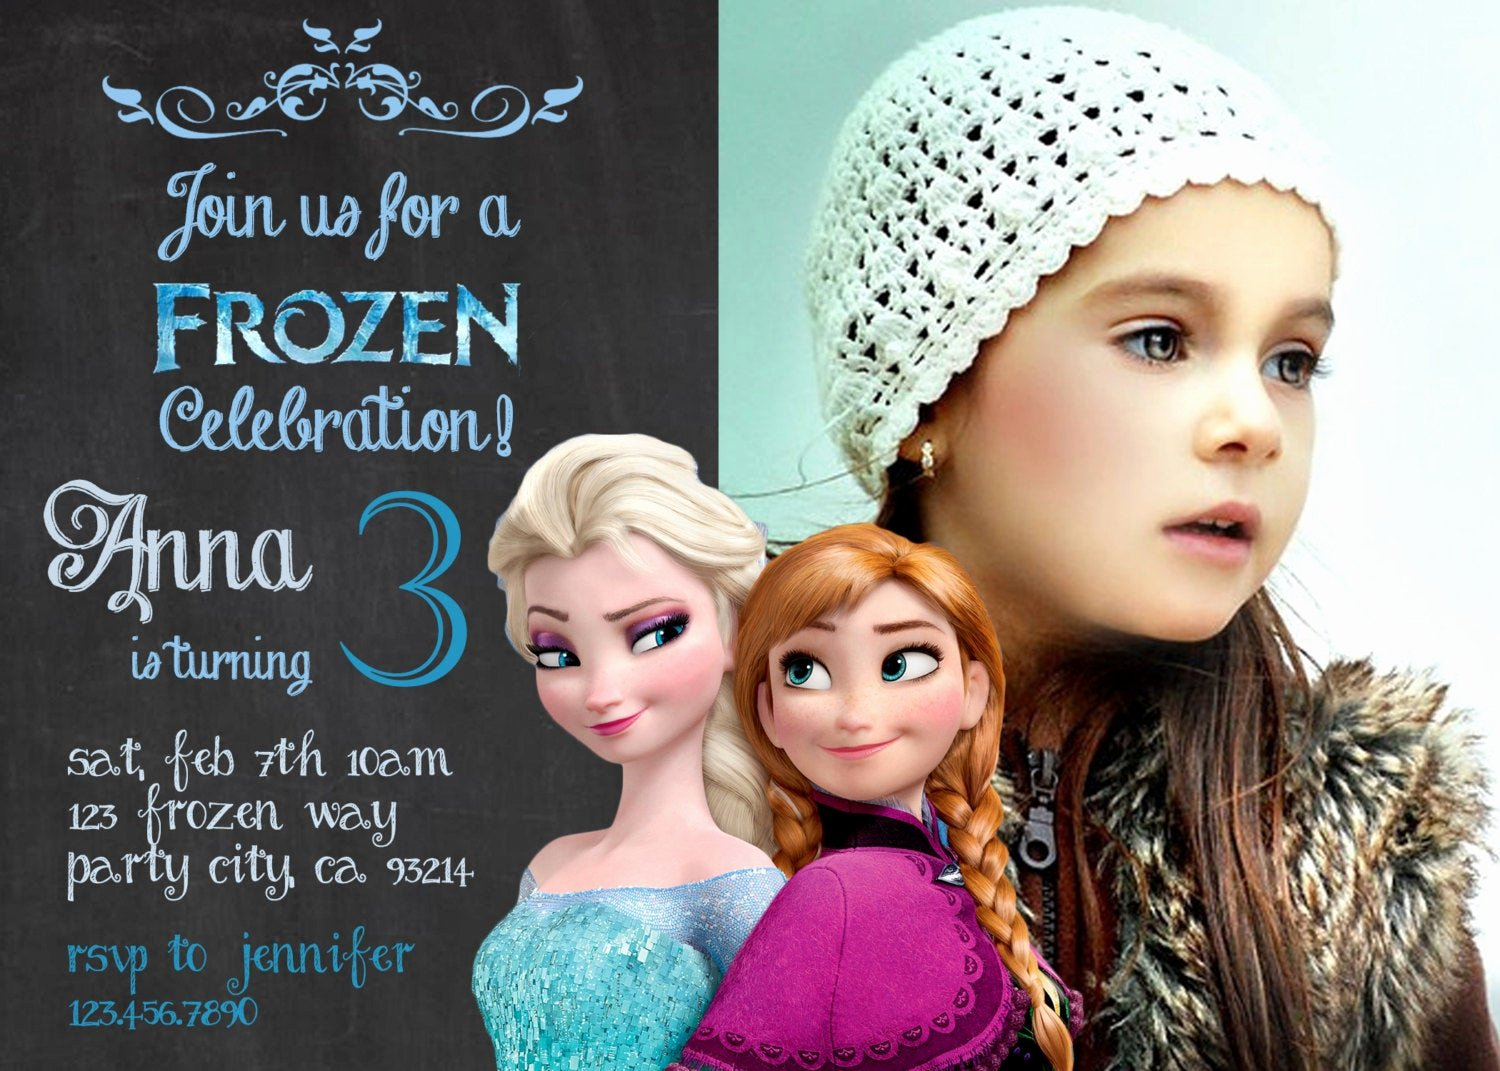 Personalized Frozen Birthday Invitations Elegant Frozen Birthday Invitation Disney S Frozen by Greyhoundgraphics